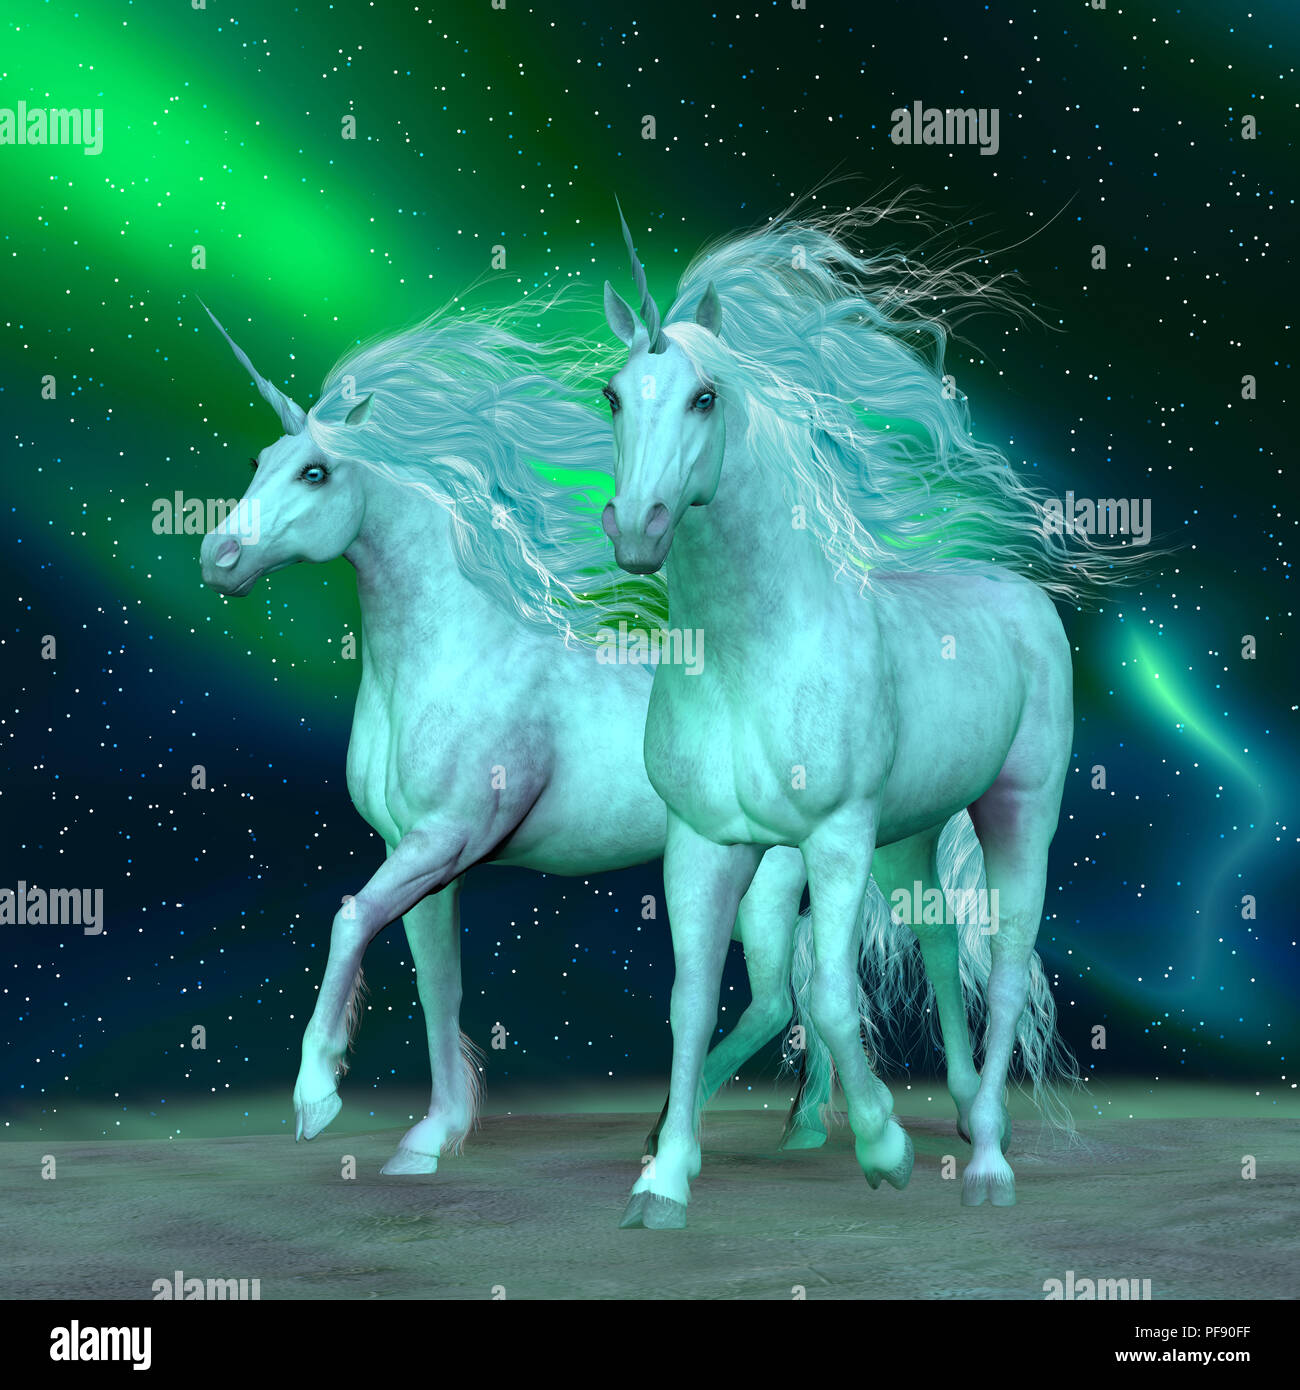 Northern Lights Unicorns - The Unicorn is a mythical creature that has a horse body with forehead horn and cloven hooves. - Stock Image